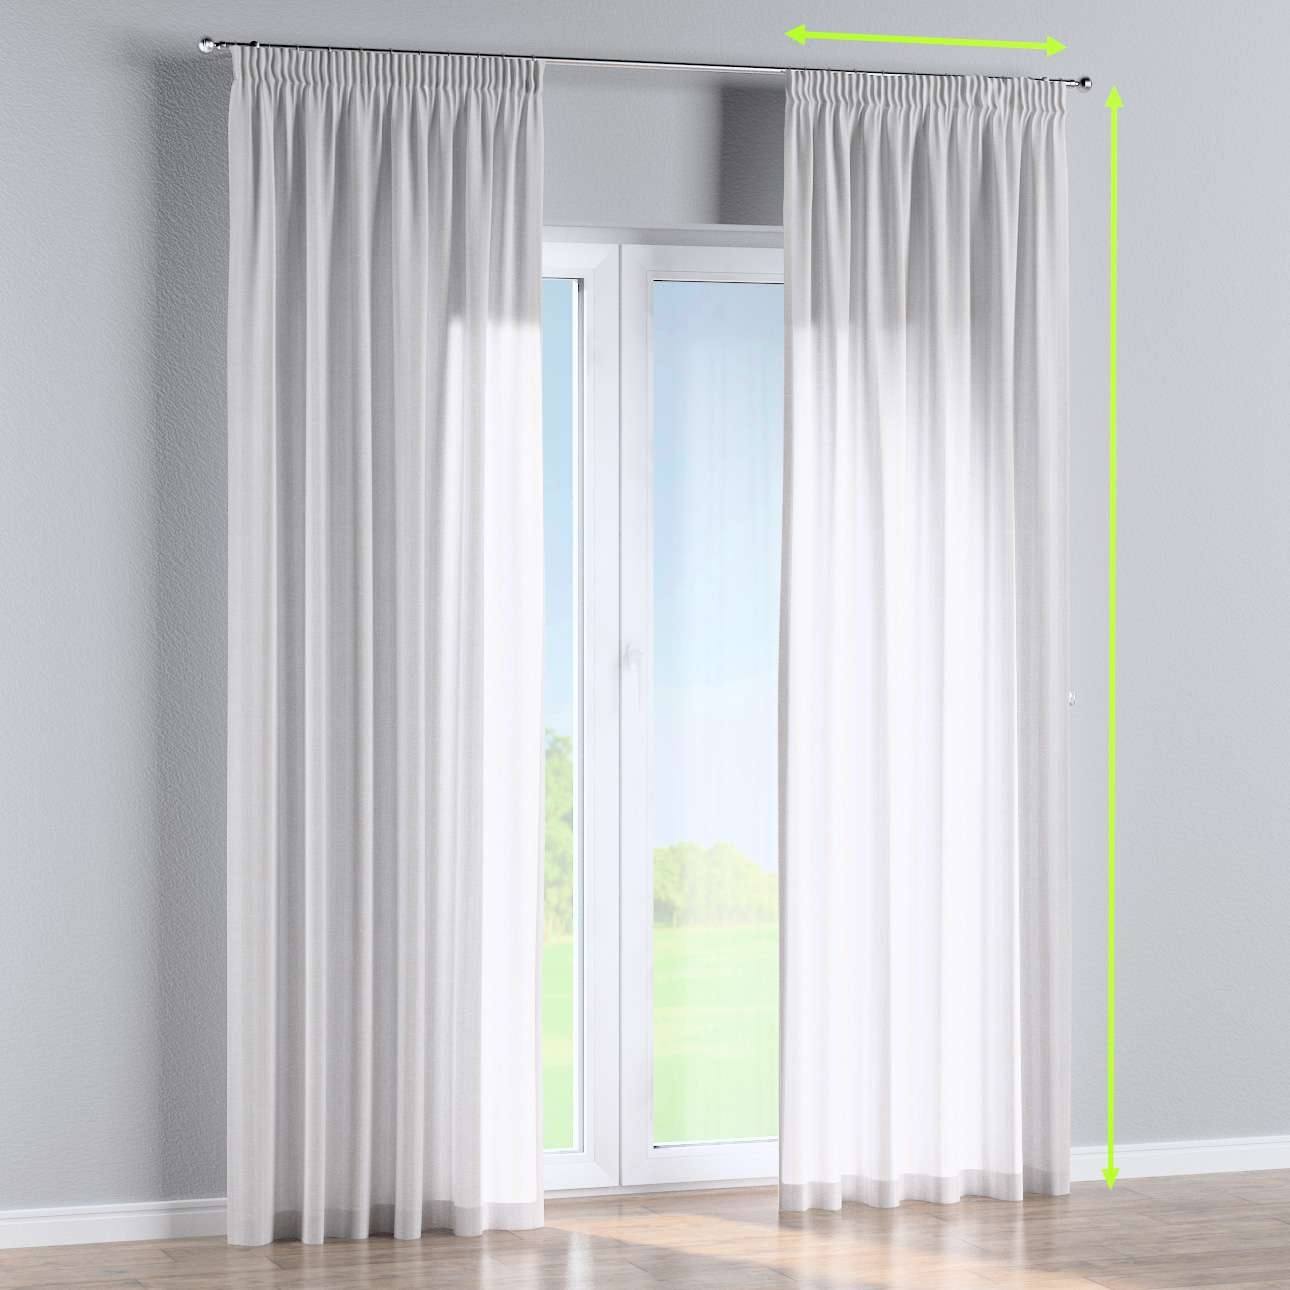 Pencil pleat lined curtains in collection Linen, fabric: 392-03